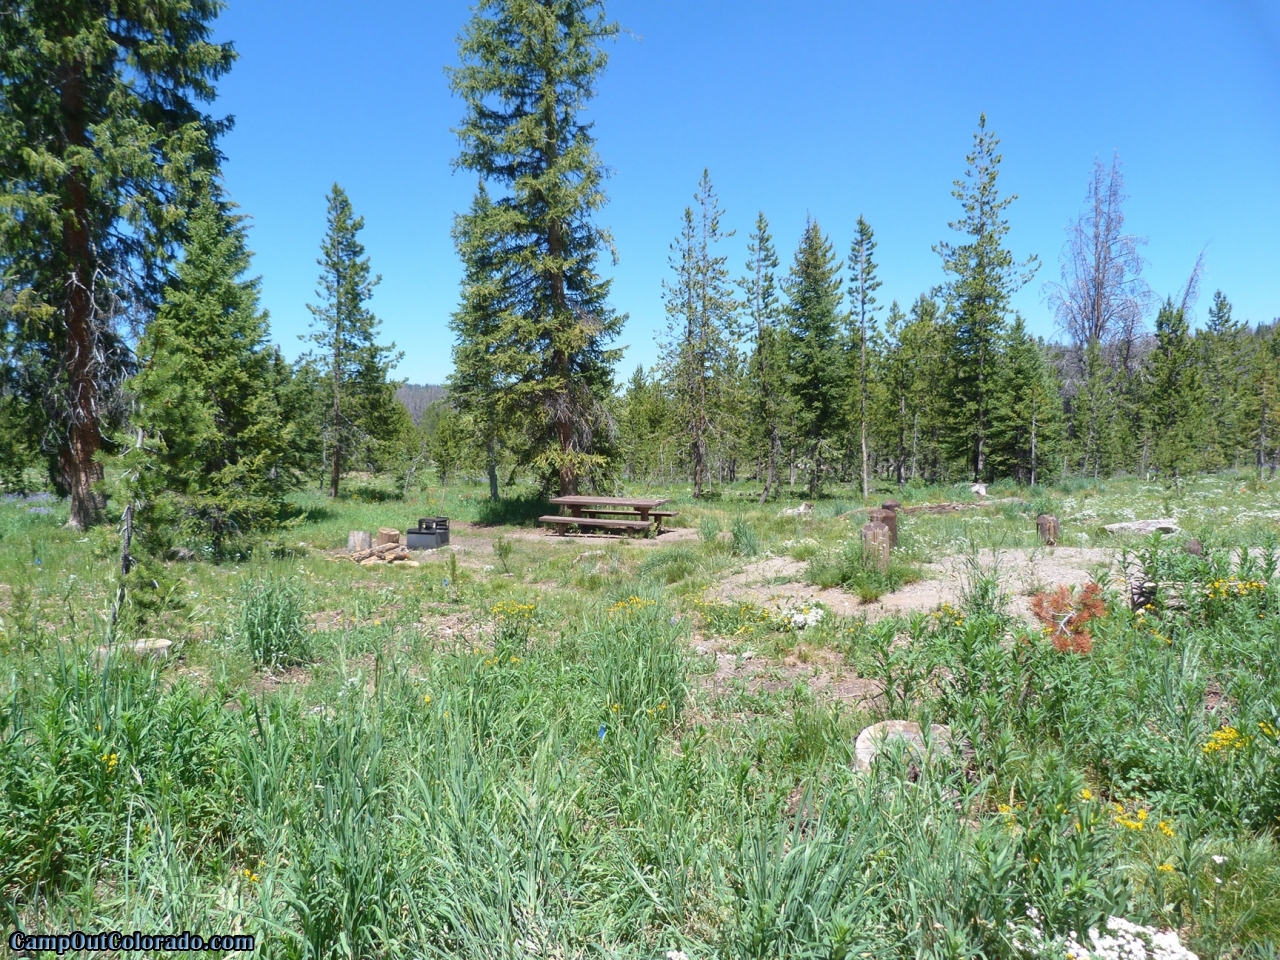 campoutcolorado-meadows-campground-rabbit-ears-good-spacing